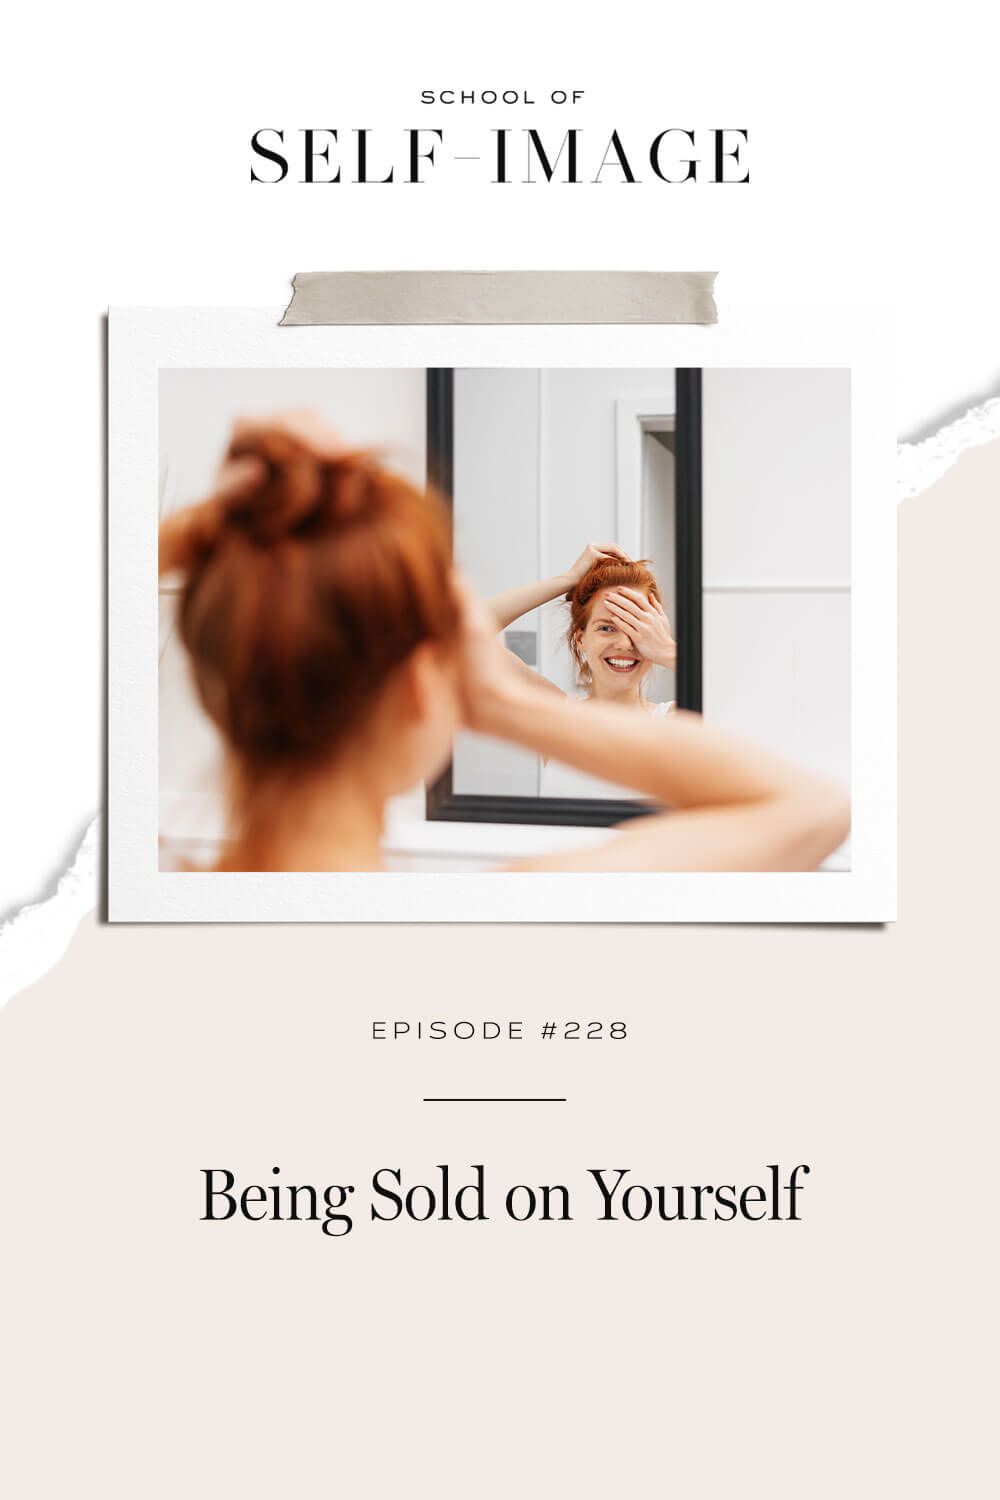 Why once you are sold on yourself, the rest of the world will be sold on you too.